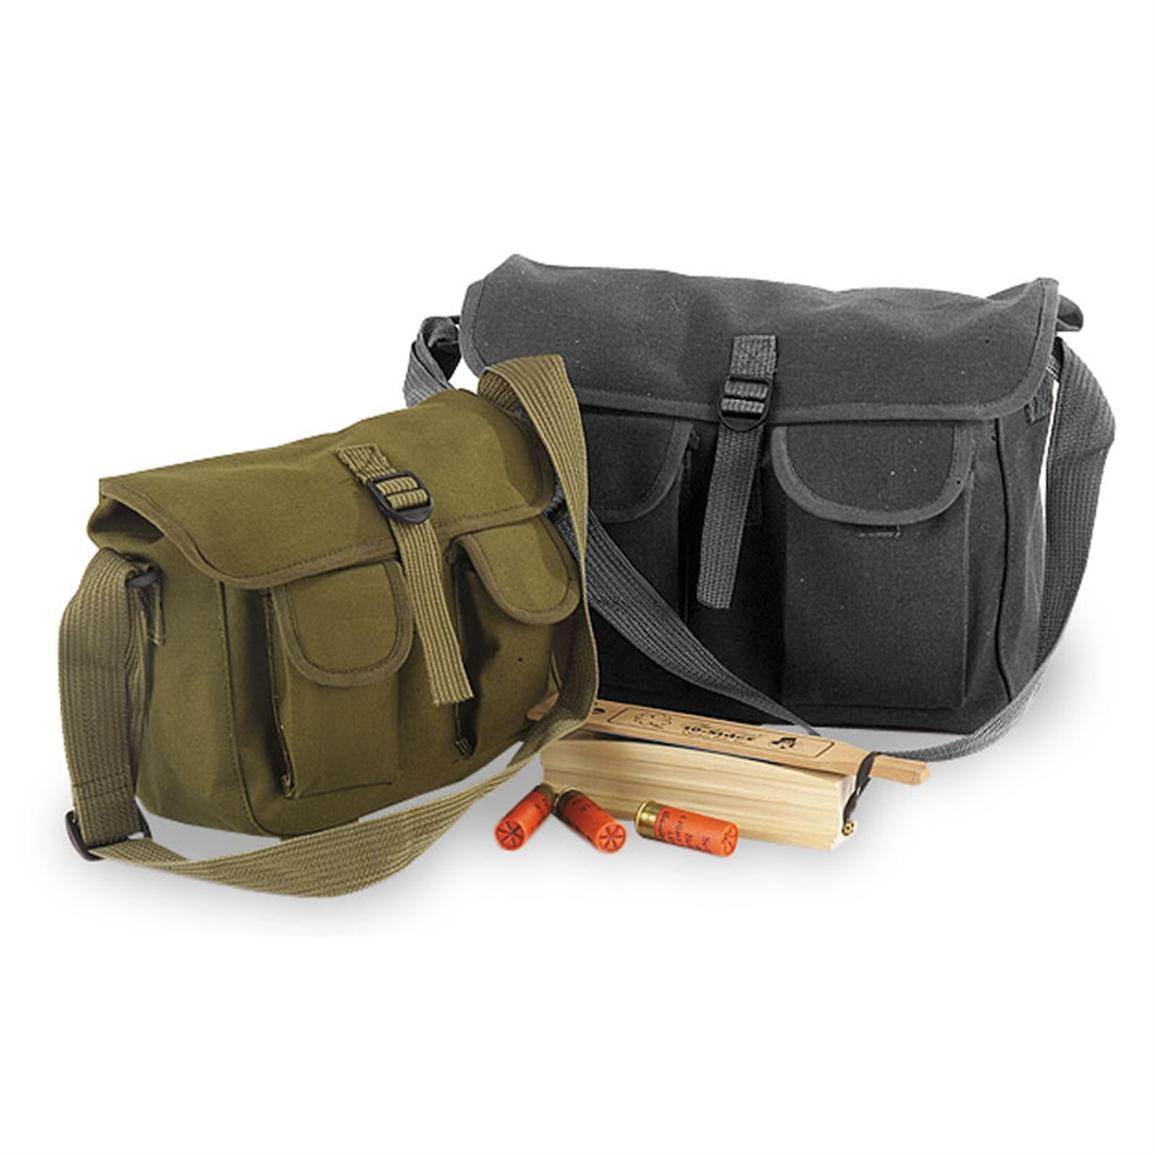 2 Ammo Utility Bags